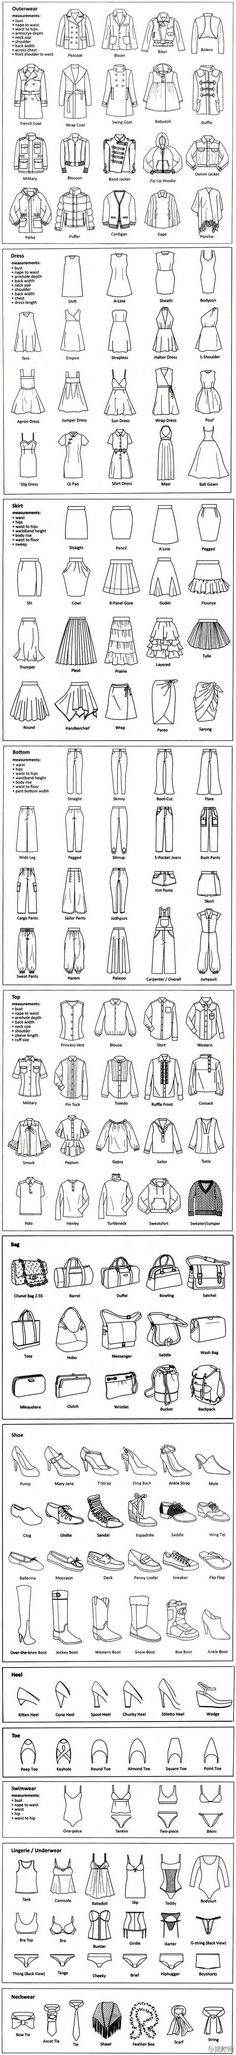 Garment fashion terminology. Really needed this!